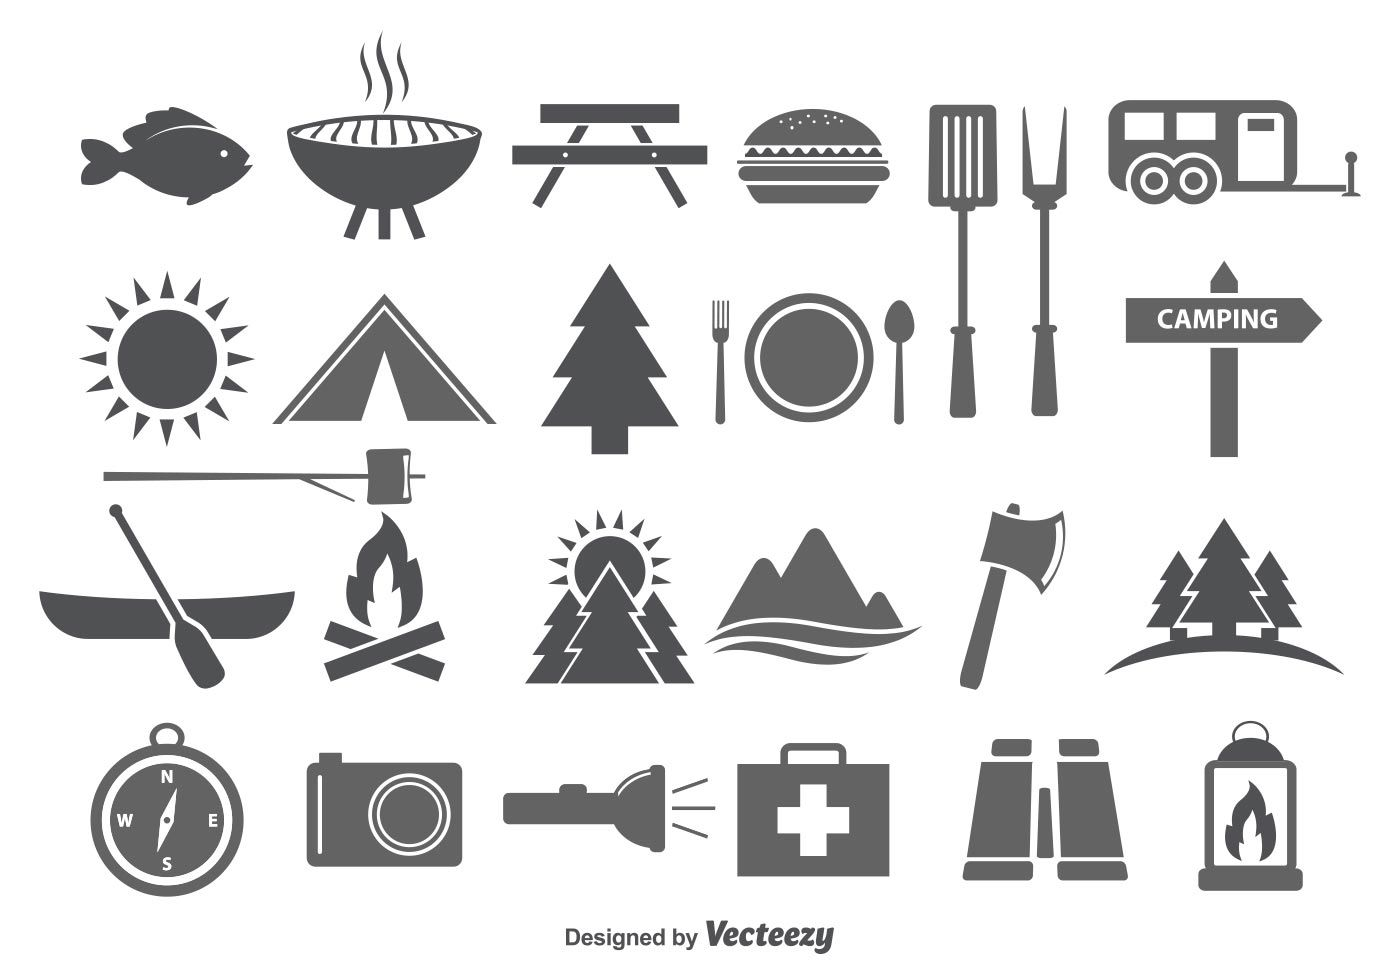 Camping & Camp Food Vector Icons | inspire design | Pinterest ...